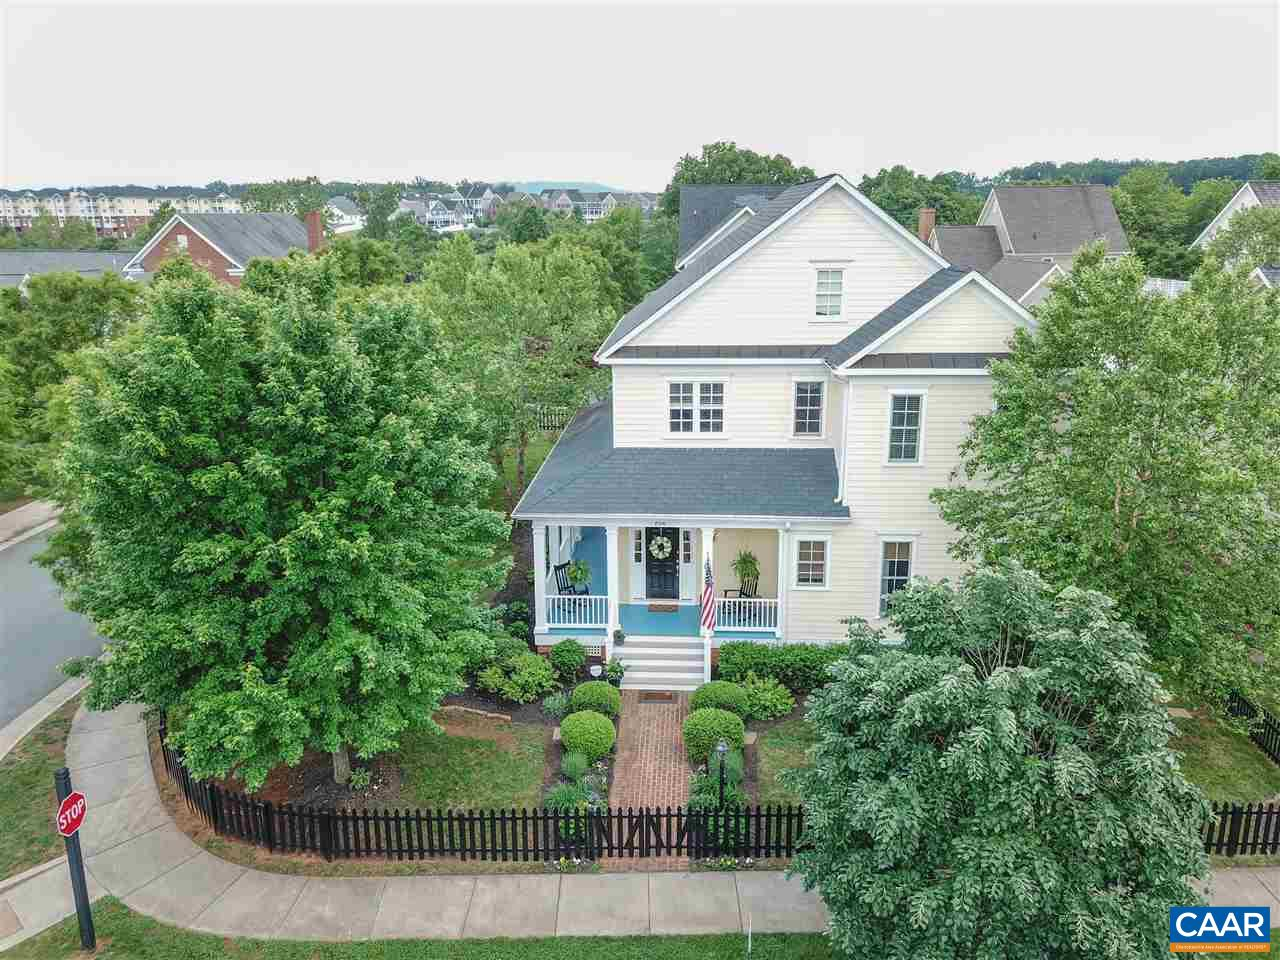 home for sale , MLS #576967, 7154 Hampstead Dr